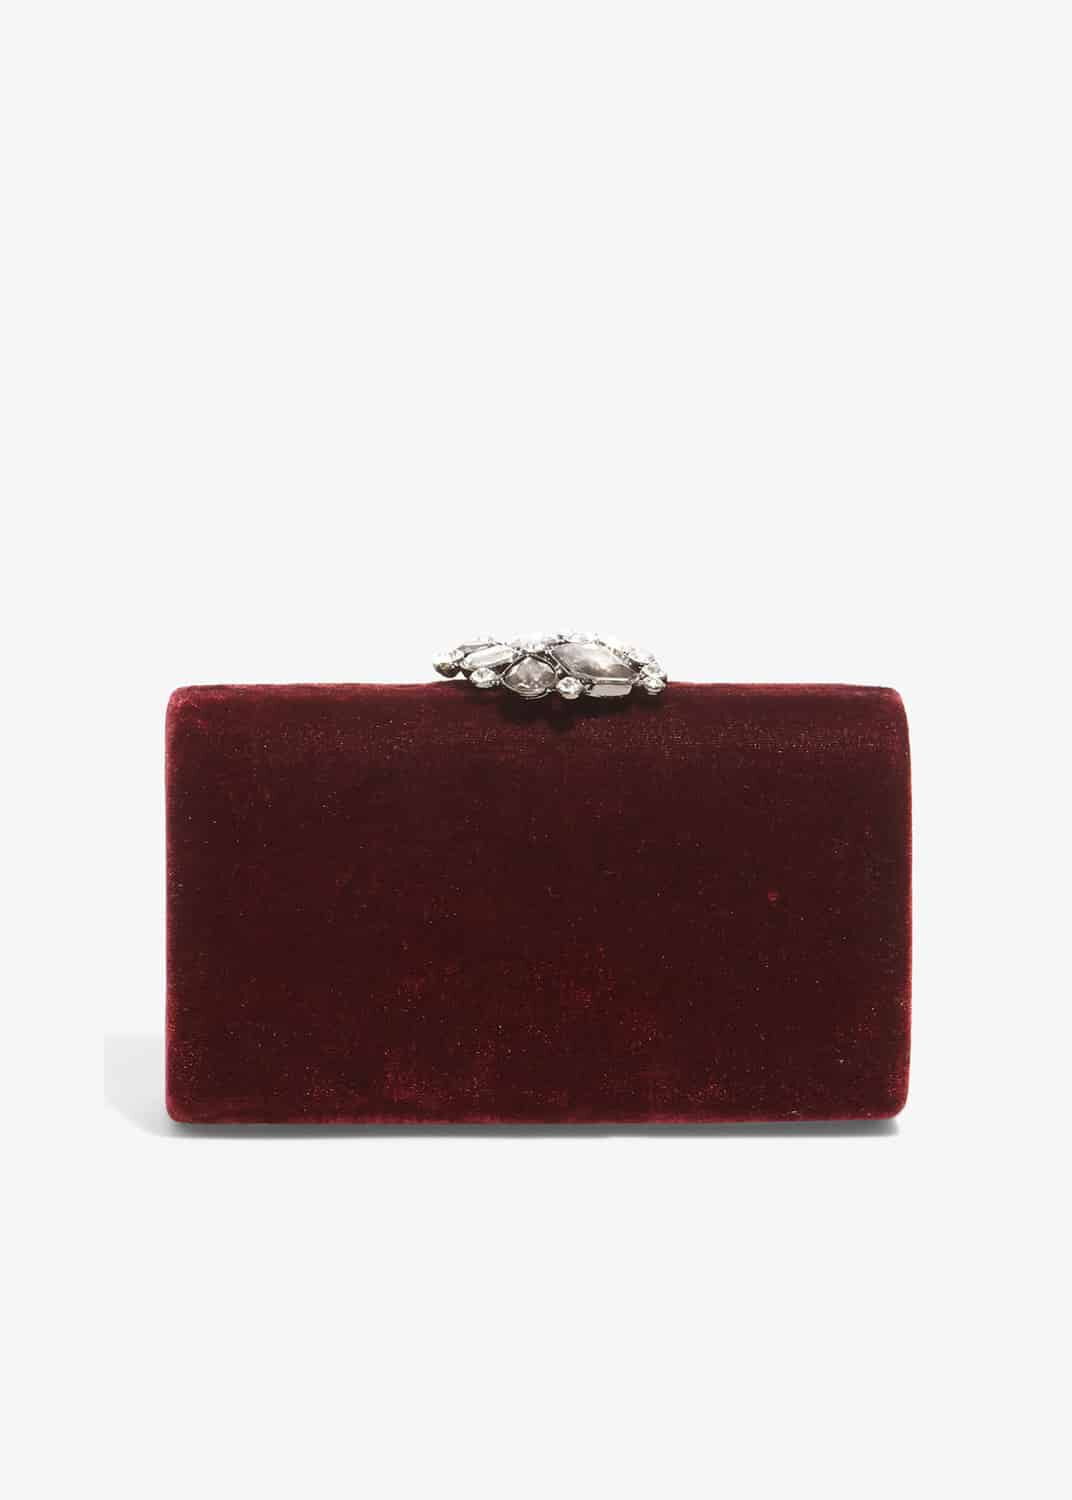 Phase Eight Juliet Jewel Top Clutch Bag, Red, Bag